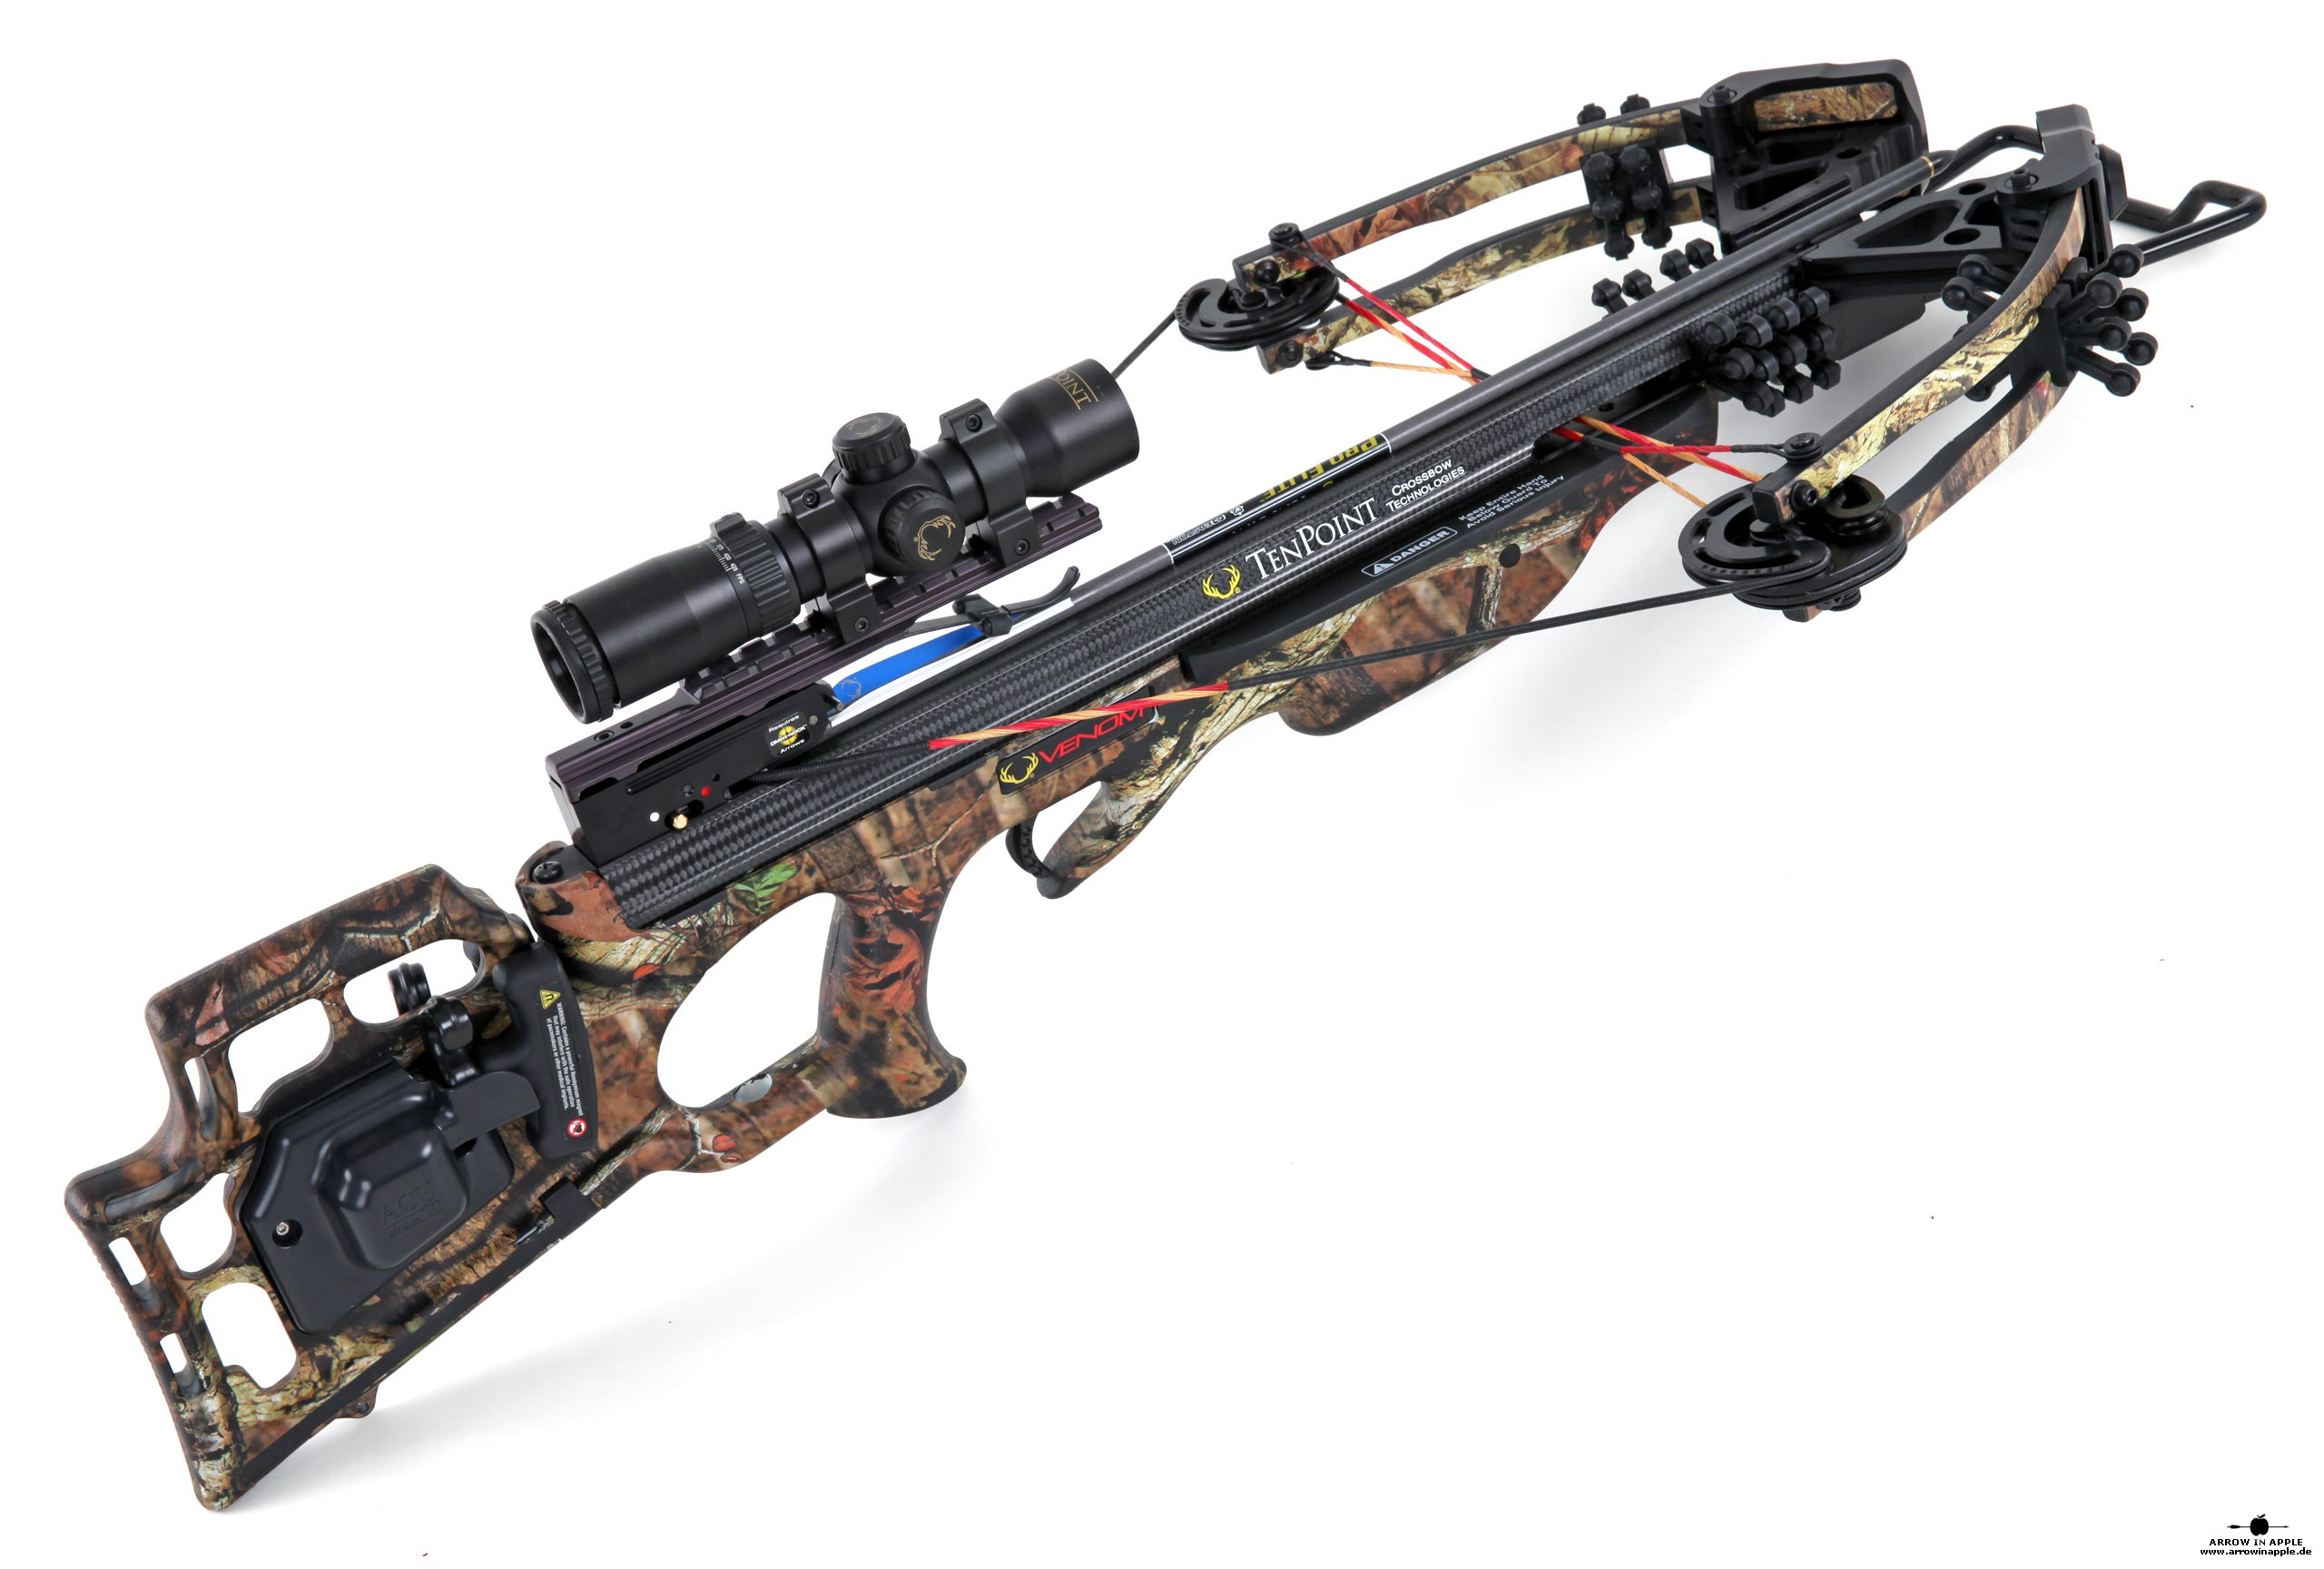 Image result for Ten Point Crossbow Technologies